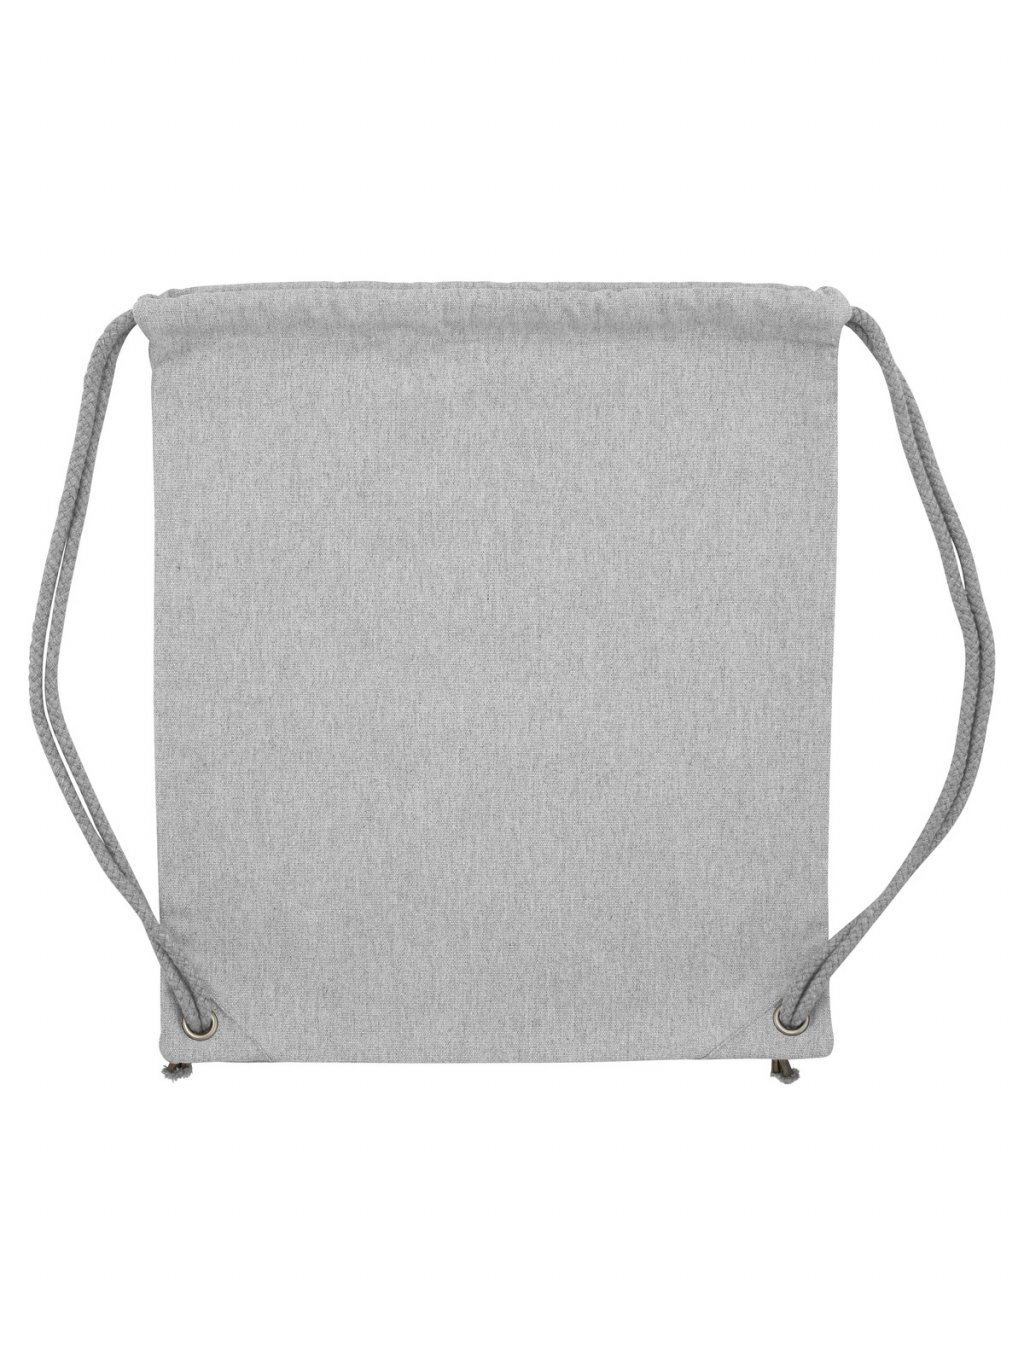 Gym Bag Heather Grey Packshot Front Main 0